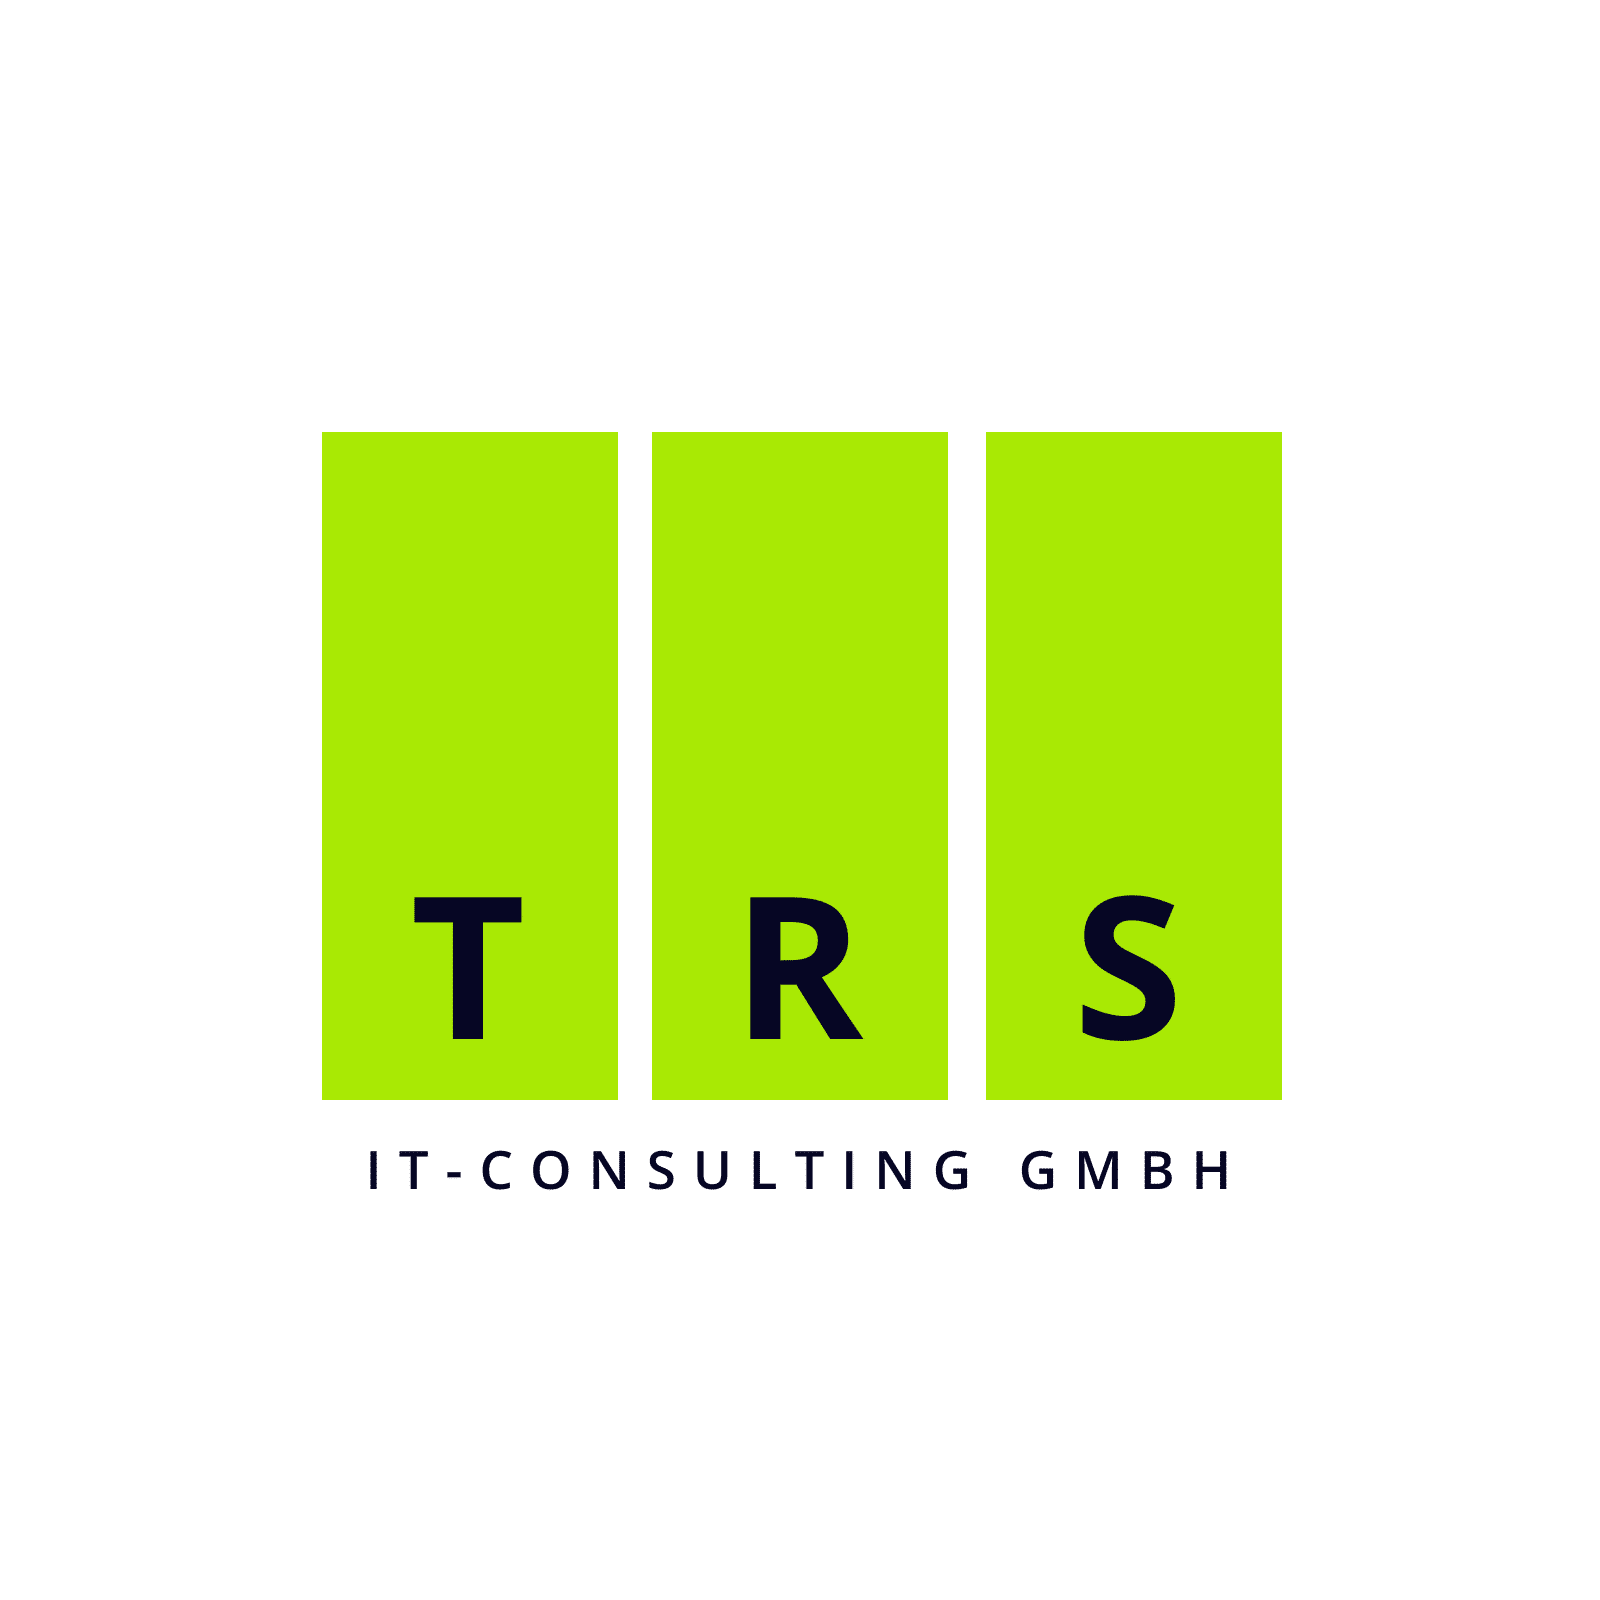 TRS IT-Consulting GmbH